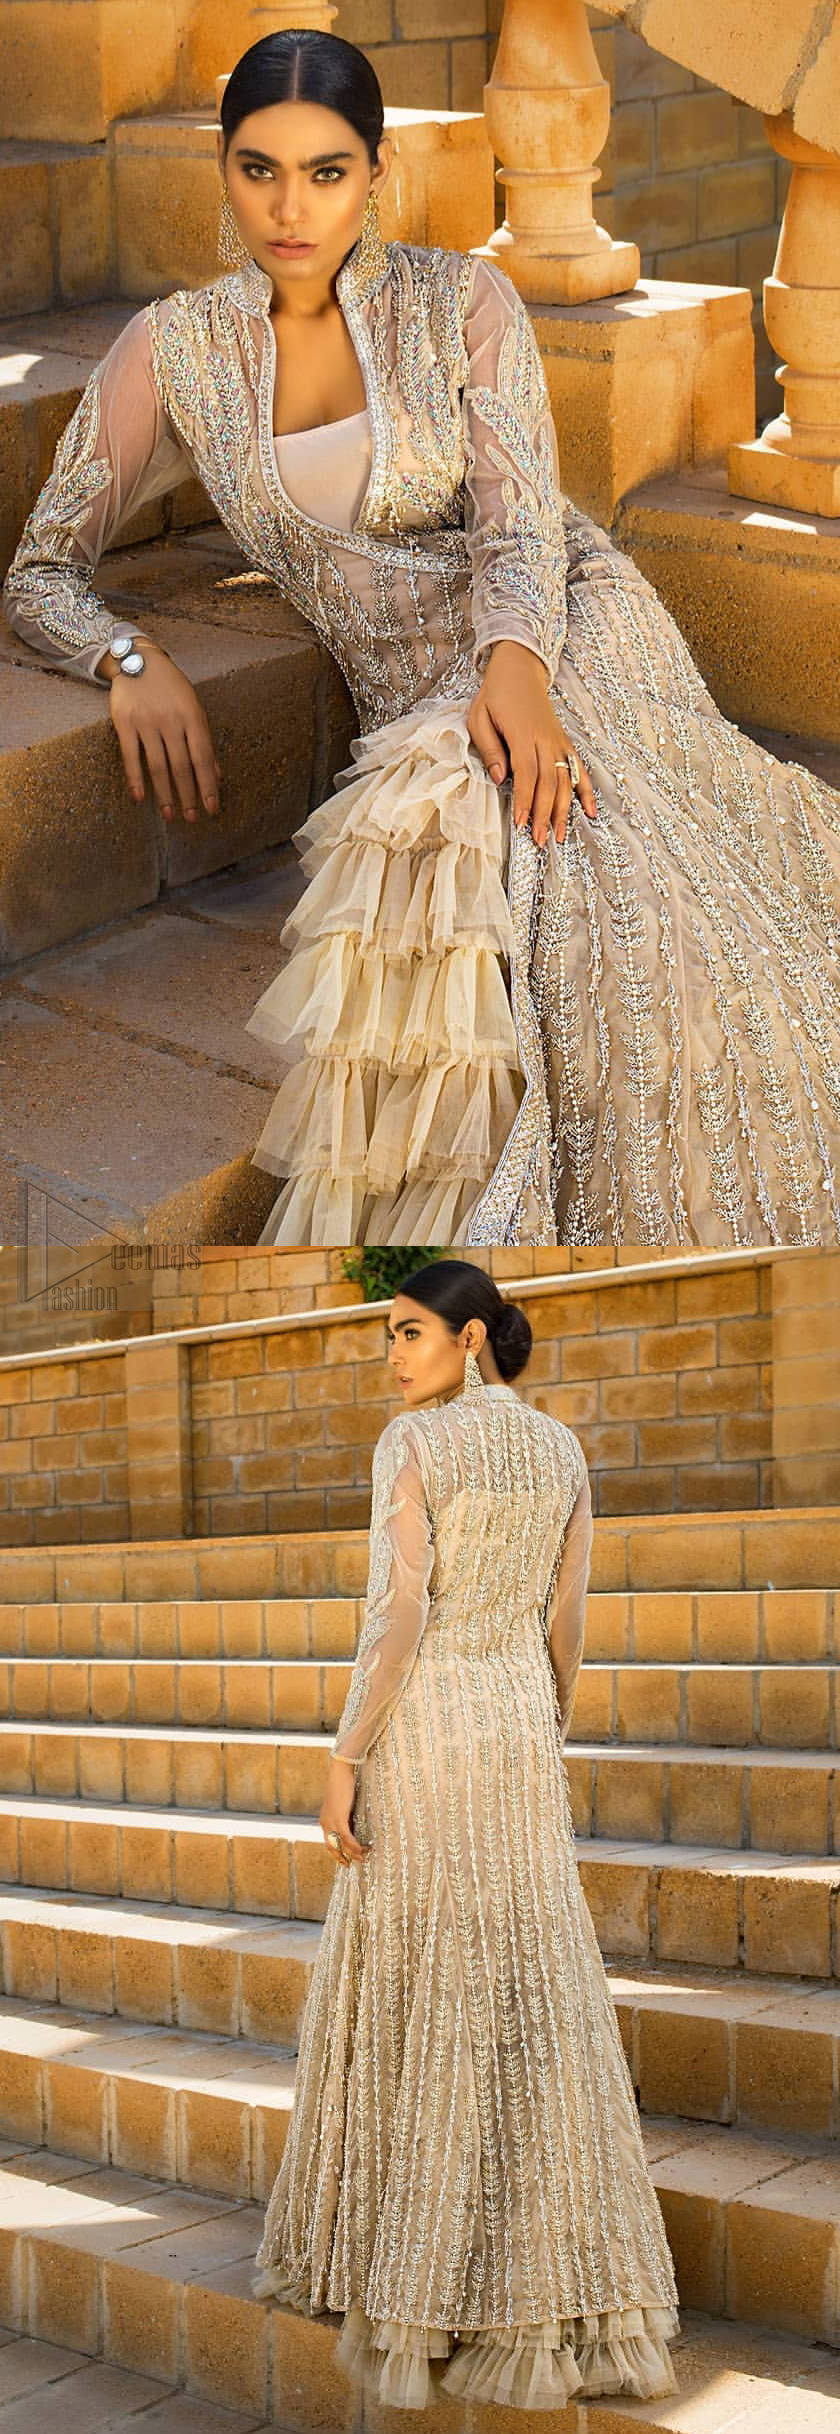 A fusion of traditional and latest fashion making the outfit trendy and unique. This angrakha style floor length maxi is heavily hand crafted with floral embroidery on the bodice, floral booties and vertical lines all over the dress. Back is also enhanced with vertically designed floral booties and swarovski crystals lines all over. The embroidery is done in the shades of silver and dull golden zardozi work. Style it up with frilled lehenga to give it a regal look. This outfit is comprises with fawn net lehenga sprinkled with sequins spray all over.